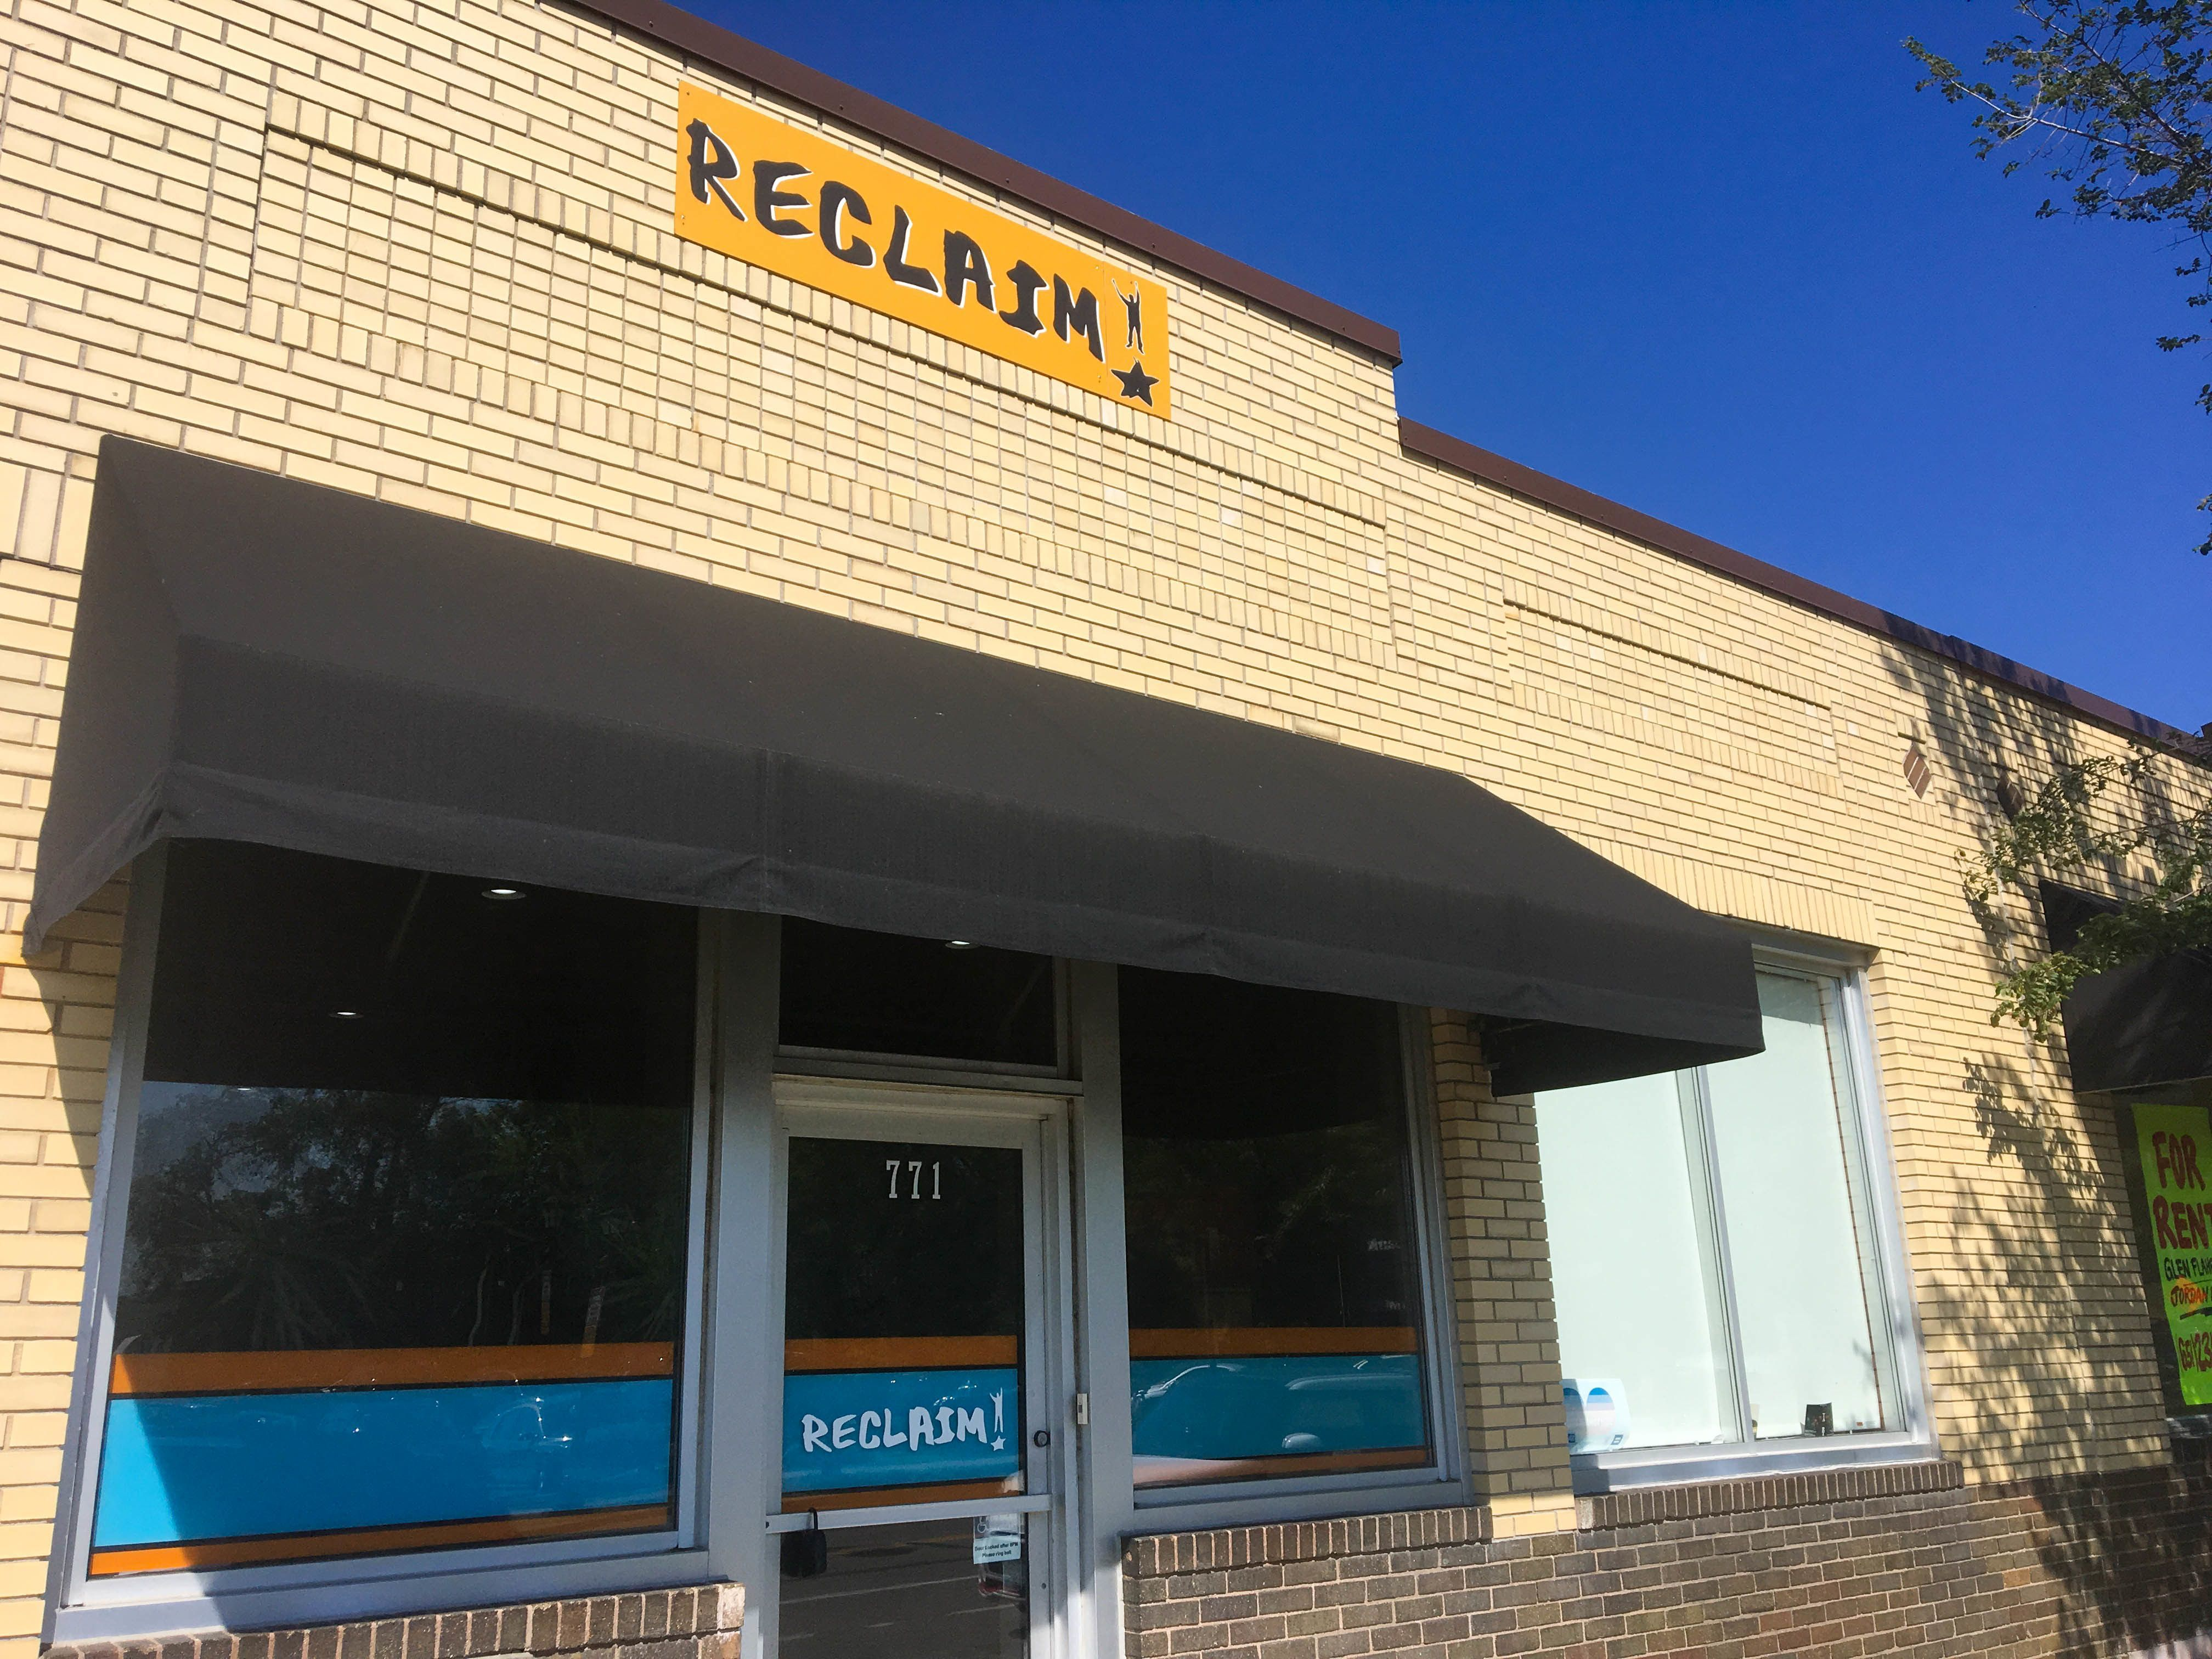 A picture of RECLAIM's office building from the front sidewalk.